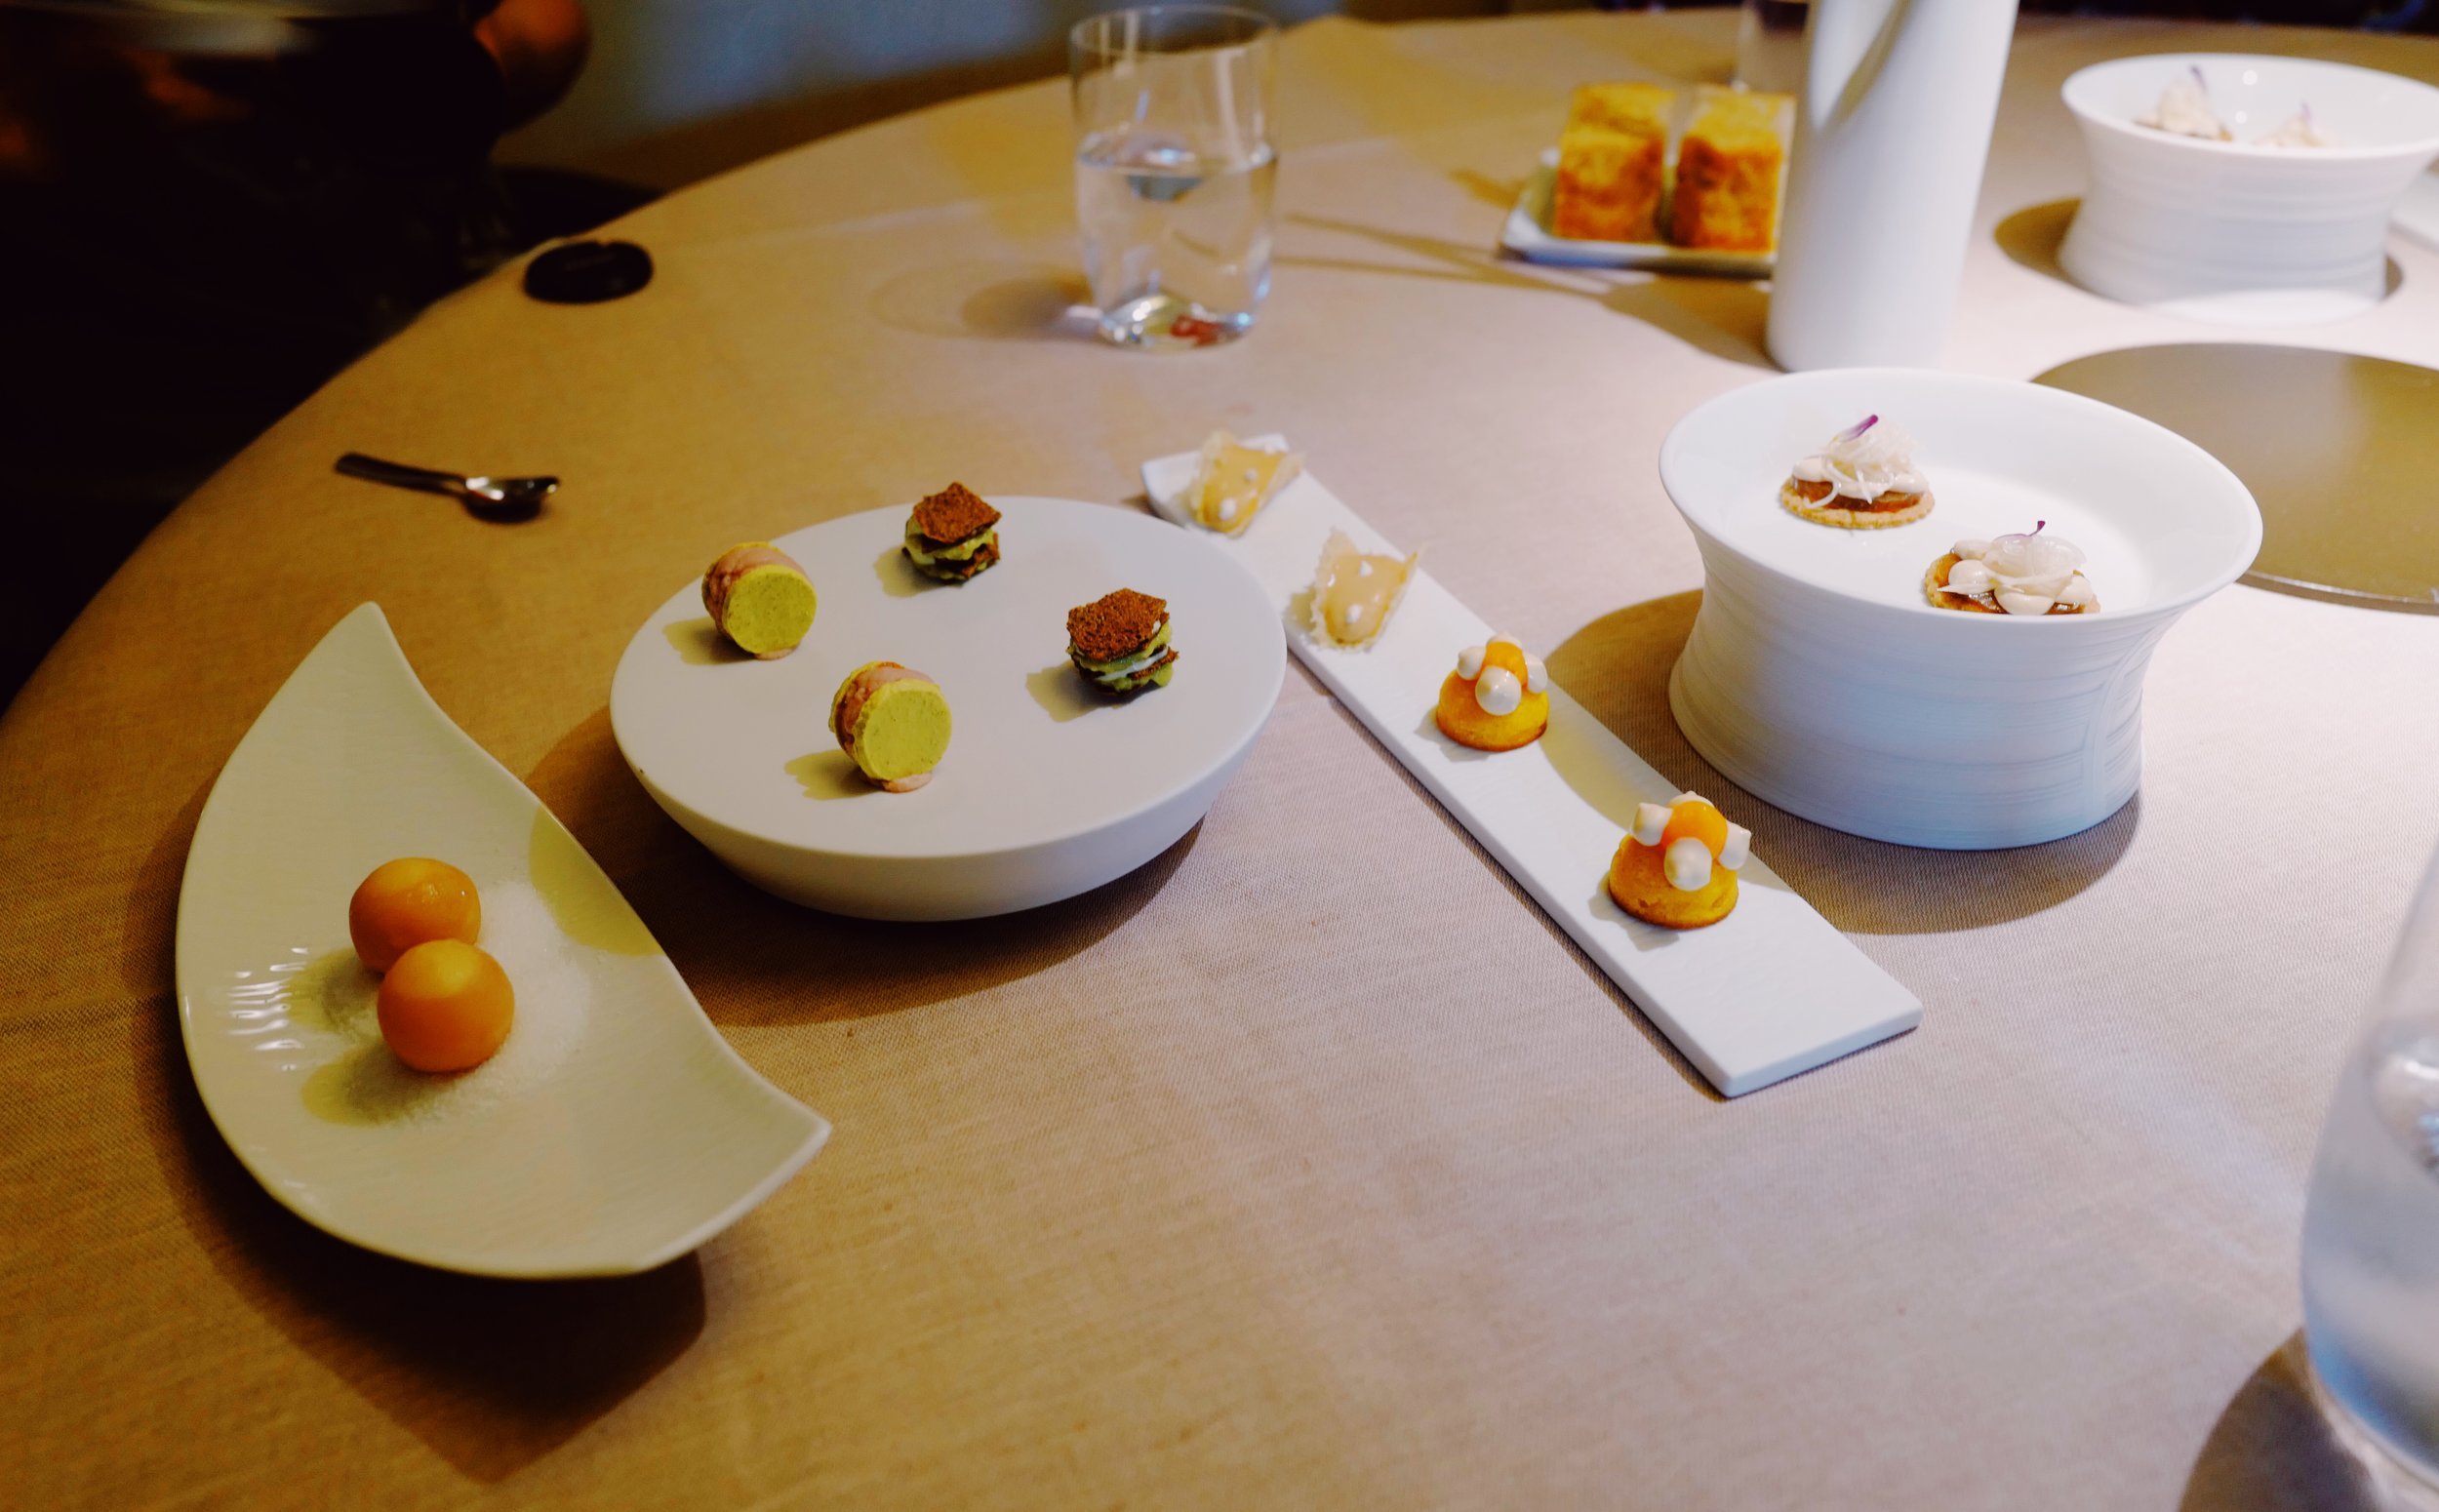 Numerous amuse bouche and small appetizers